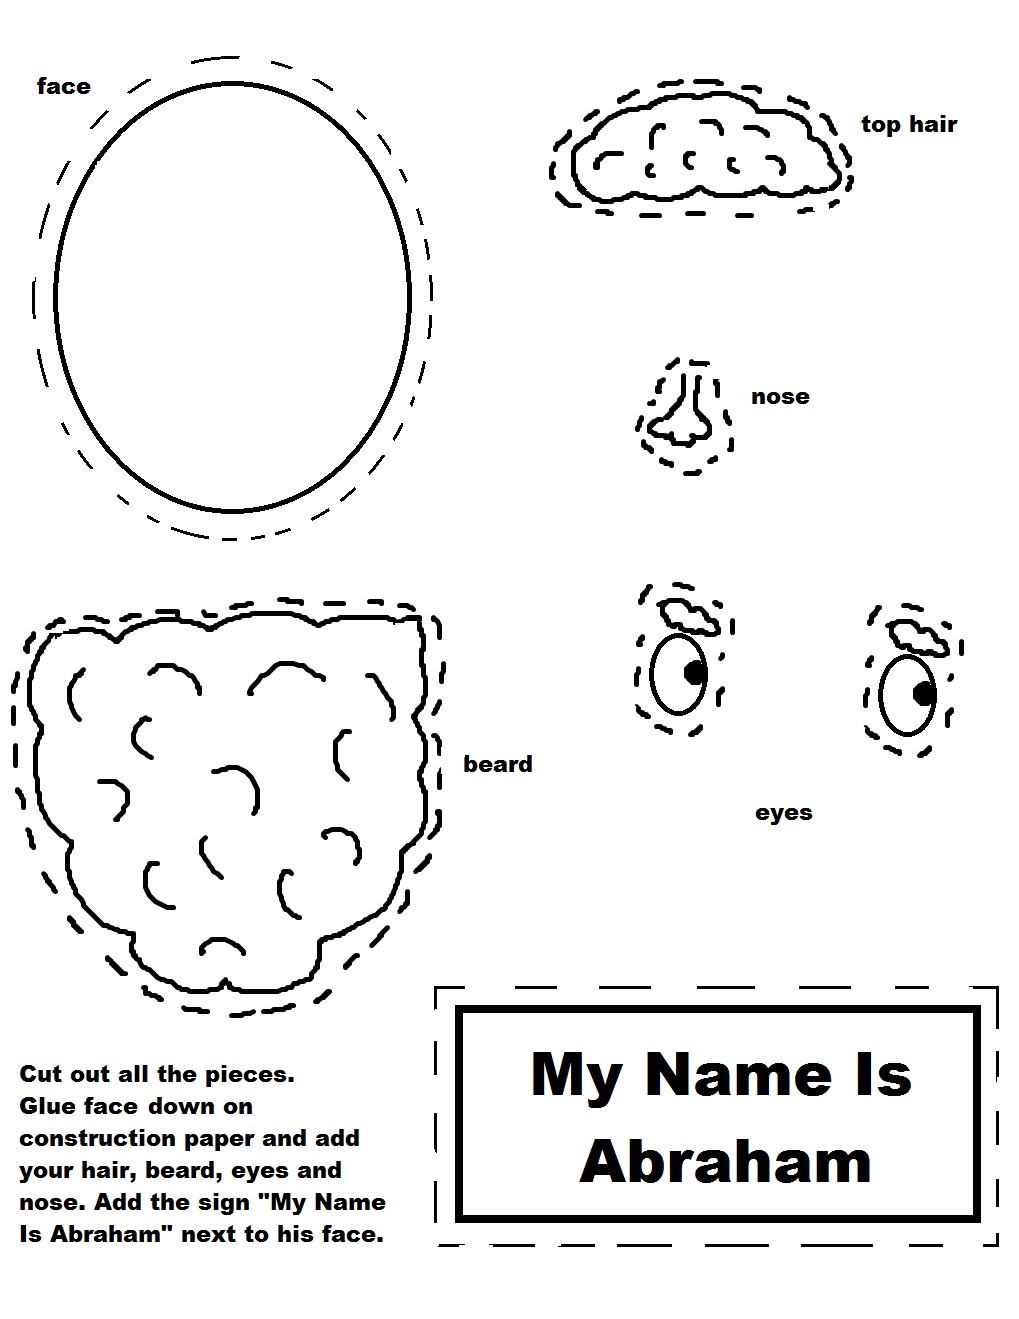 Abraham coloring pages (With images) | Abraham and sarah, Bible ... | 1319x1019